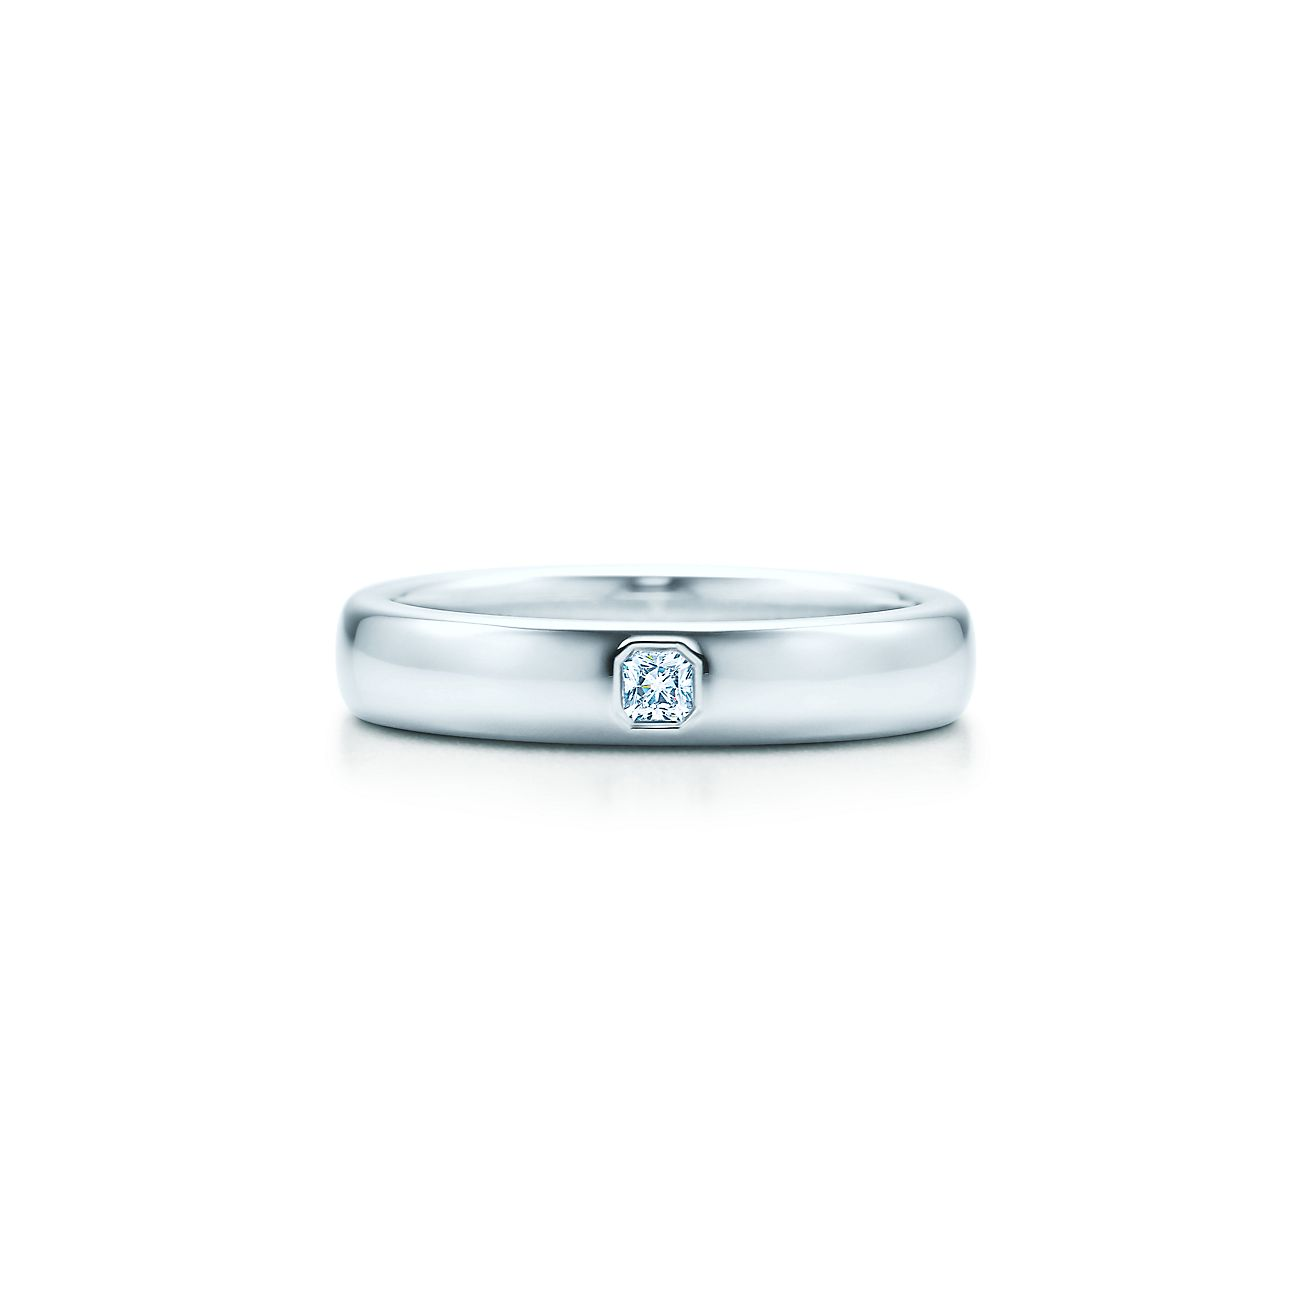 Tiffany classic wedding band ring in platinum with a diamond 4 tiffany classicwedding band ring junglespirit Images